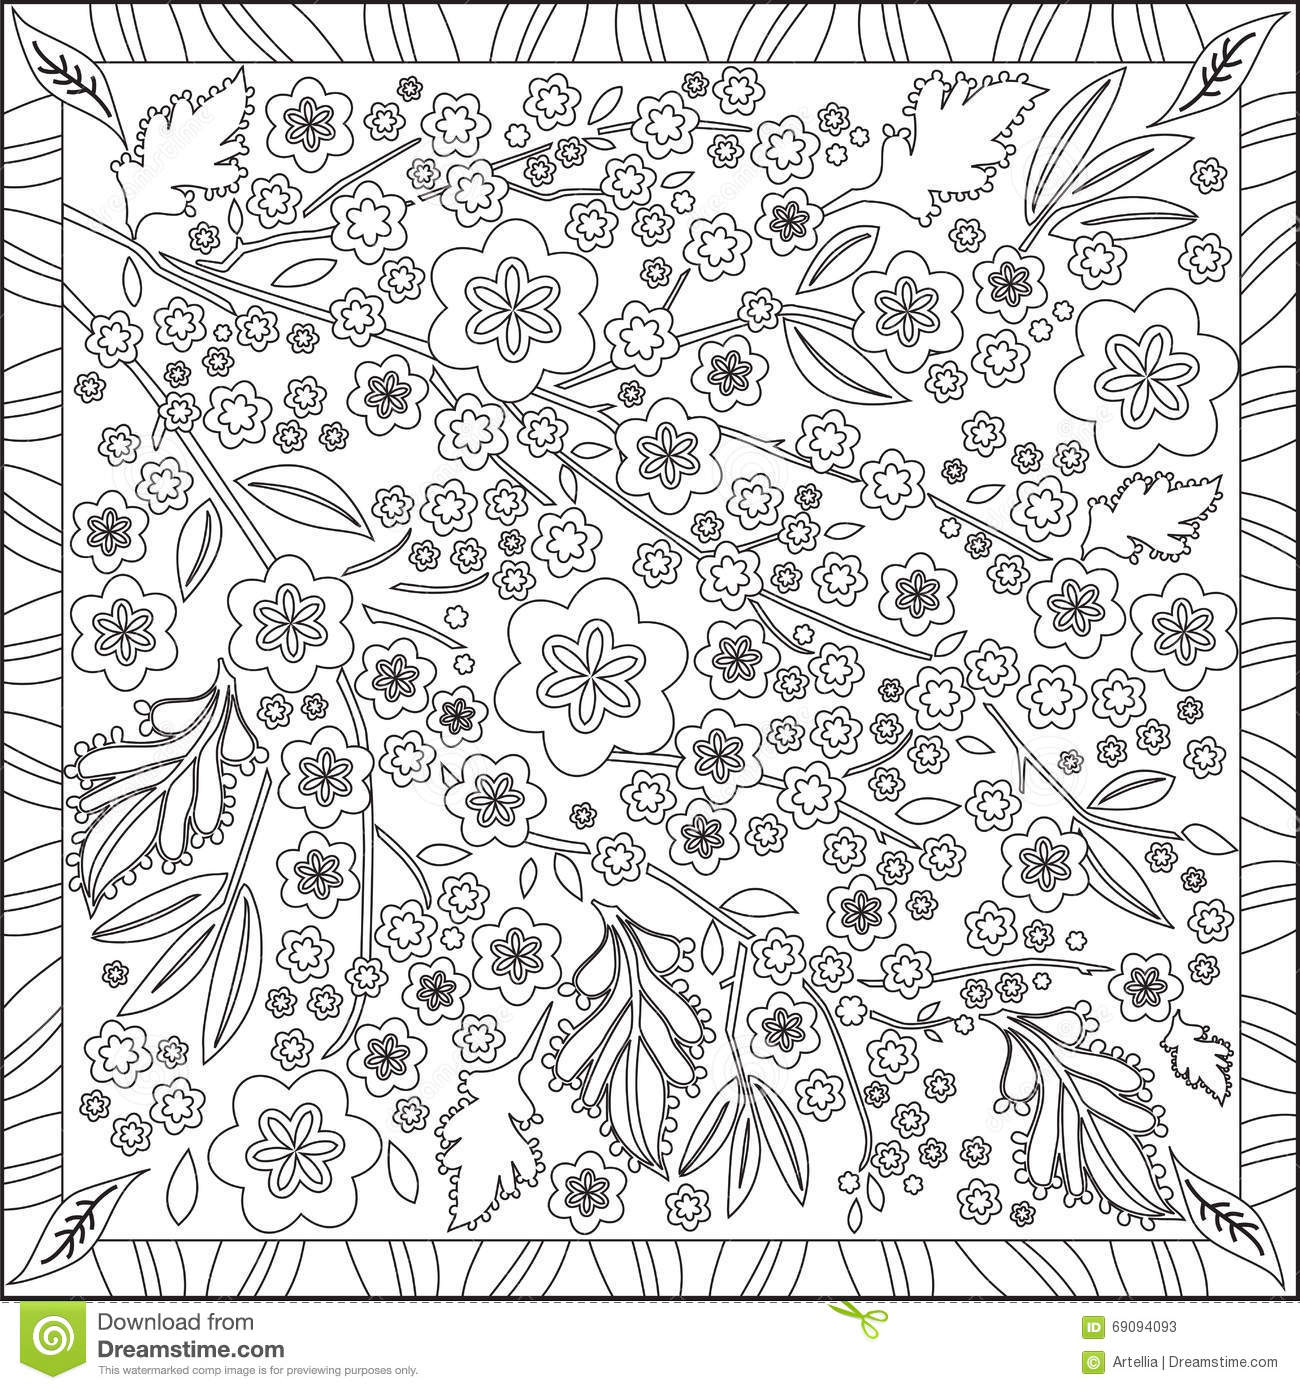 blossoms coloring pages - photo#49